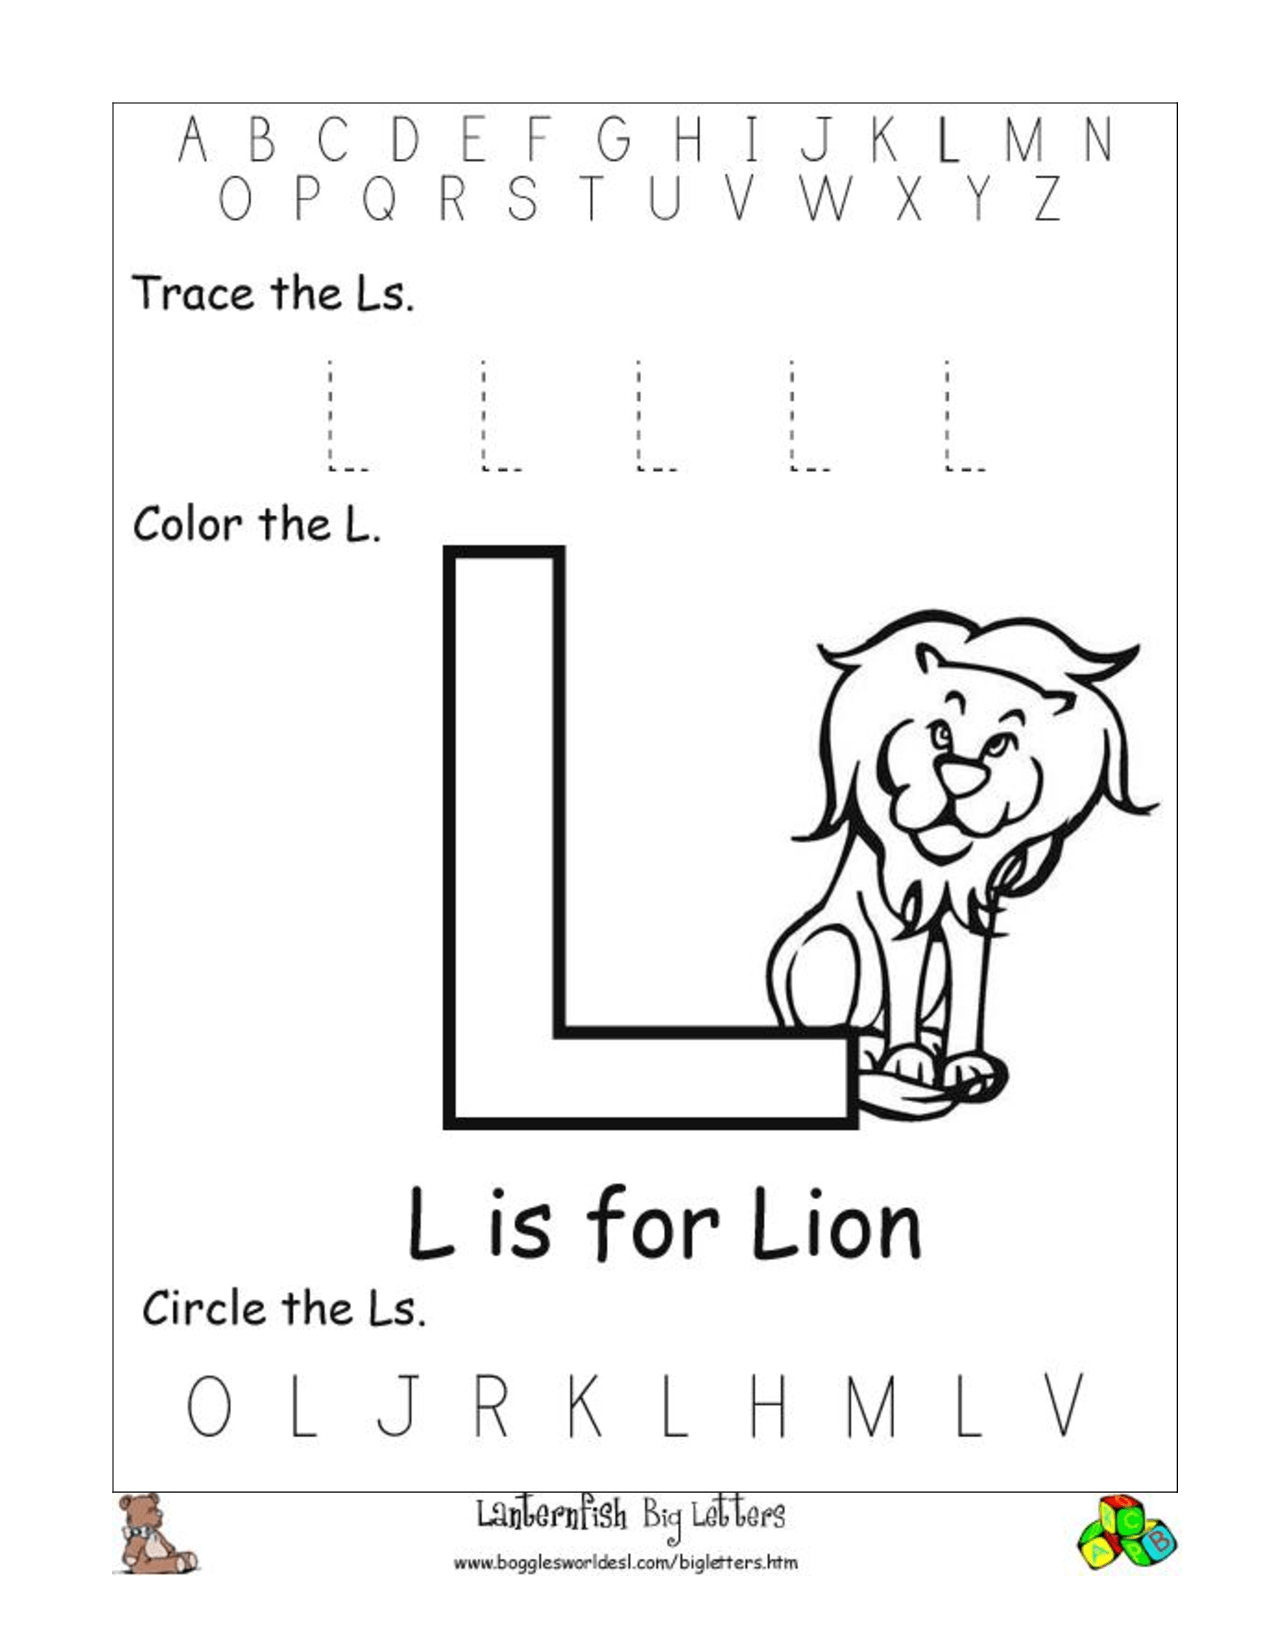 Worksheets Letter L Worksheets For Preschool letter l worksheet delibertad preschool worksheets